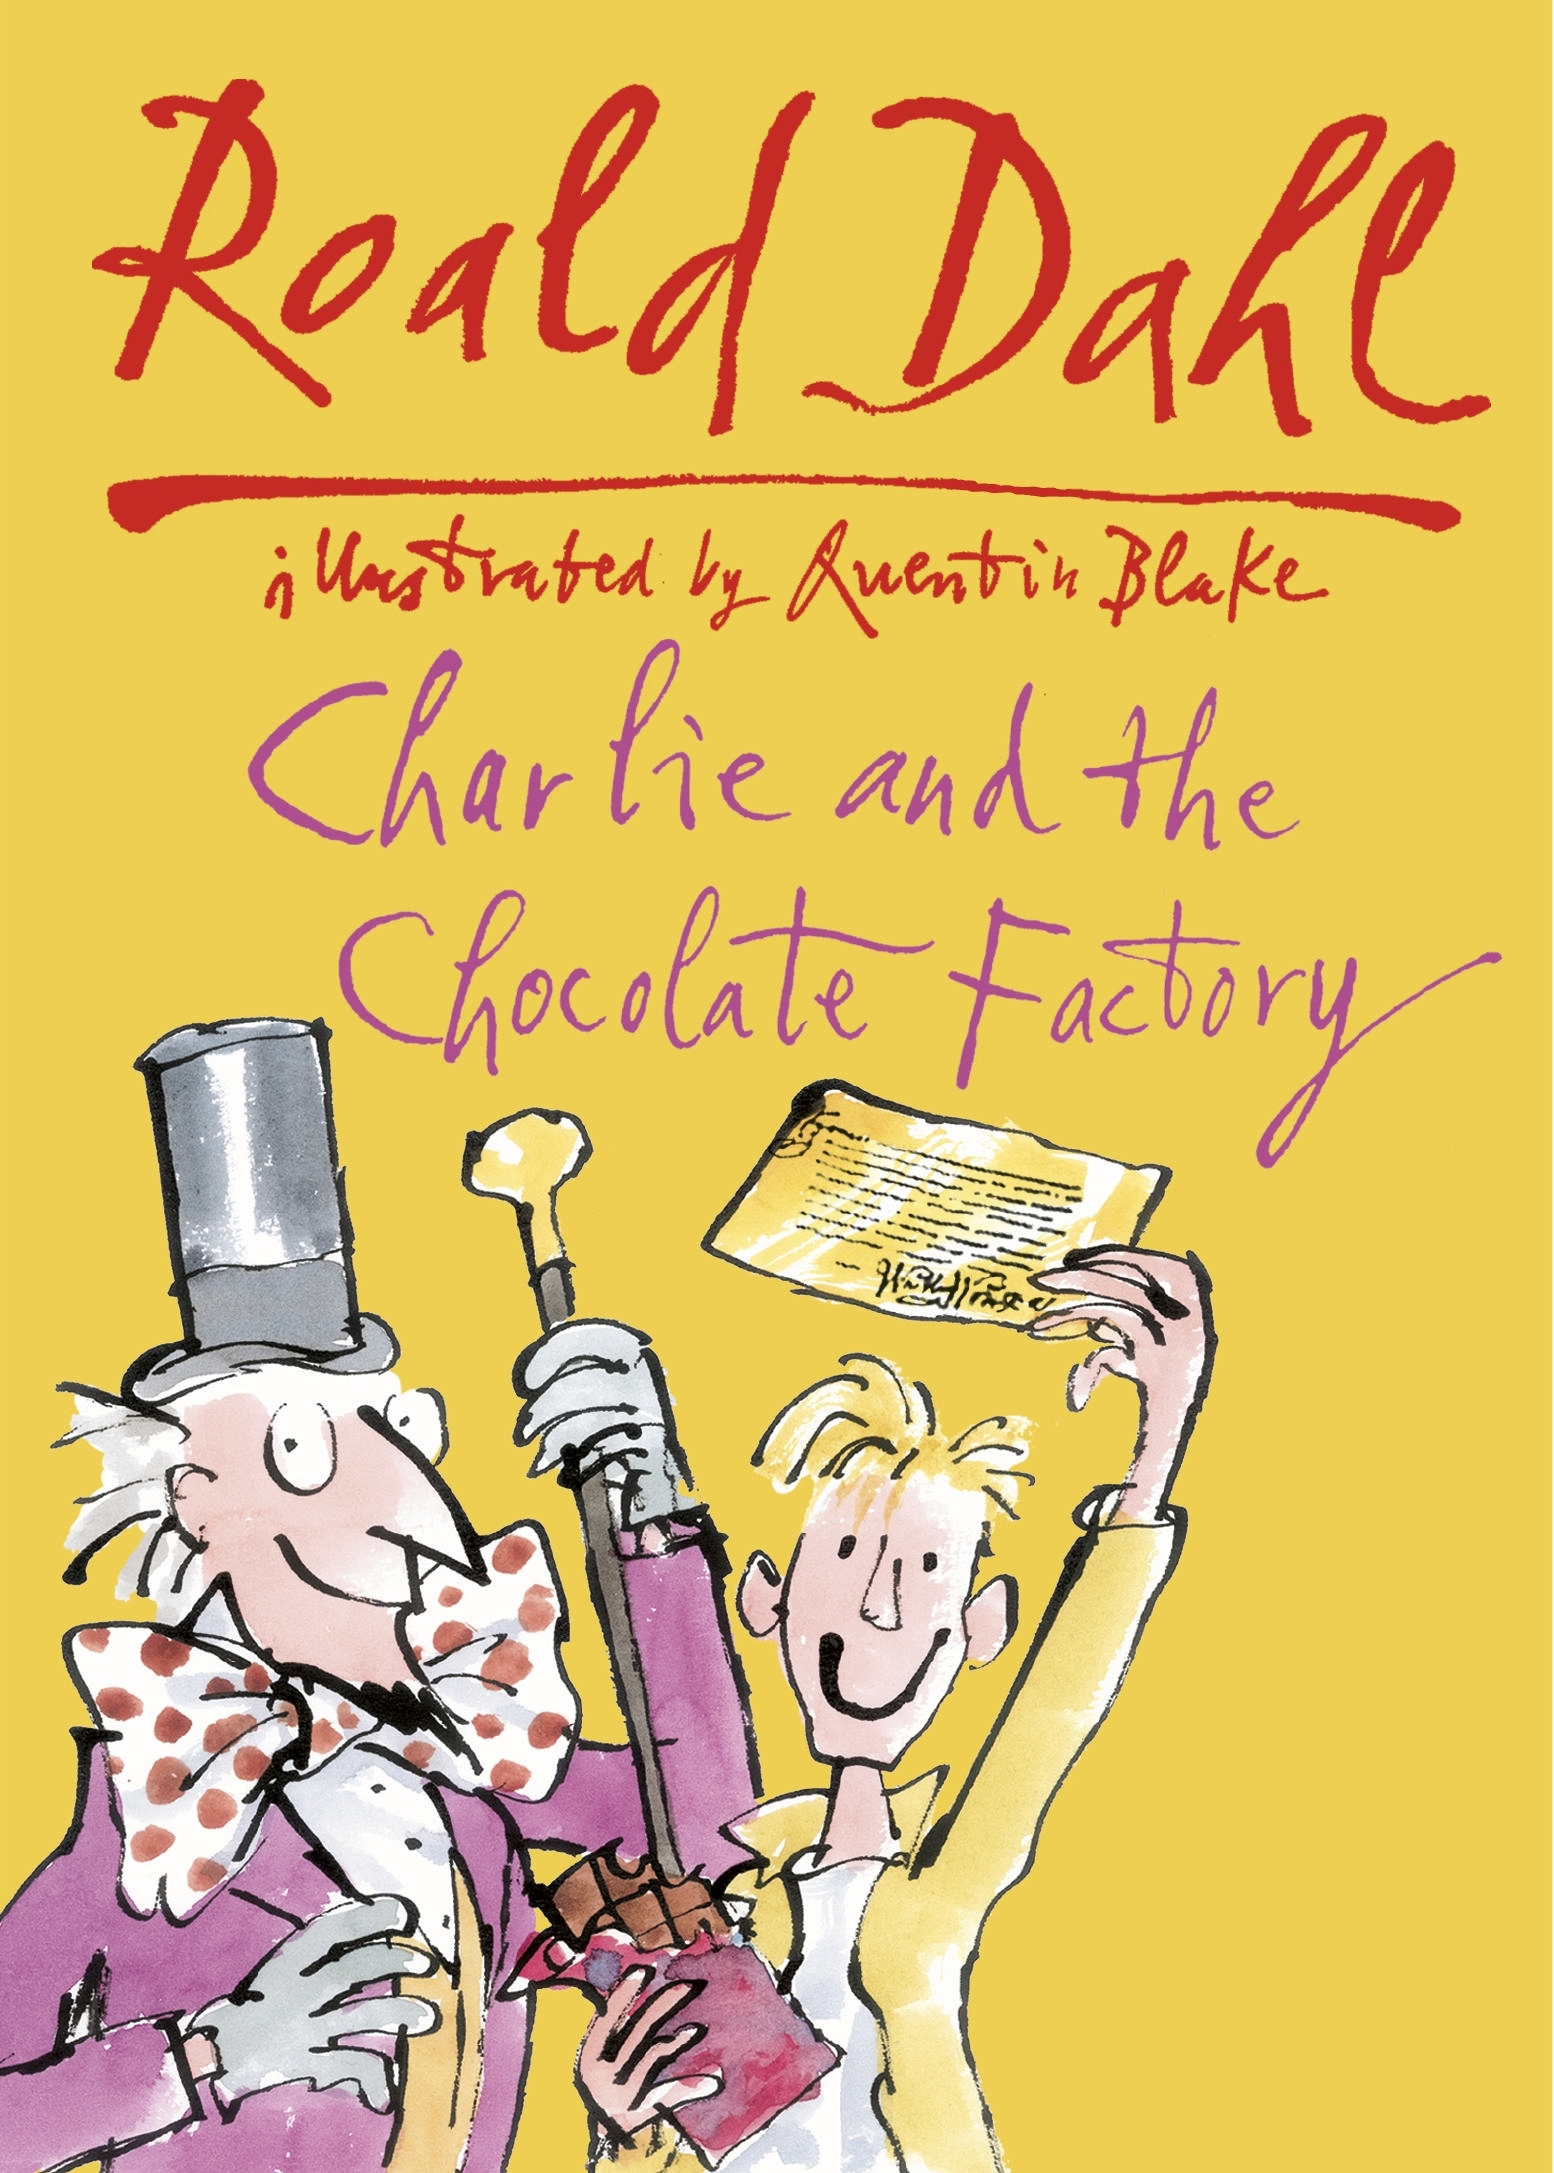 writer of charlie and the chocolate factory exclusive charlie and  book cover throwback charlie the chocolate factory raven oak book cover throwbacy charlie and the chocolate